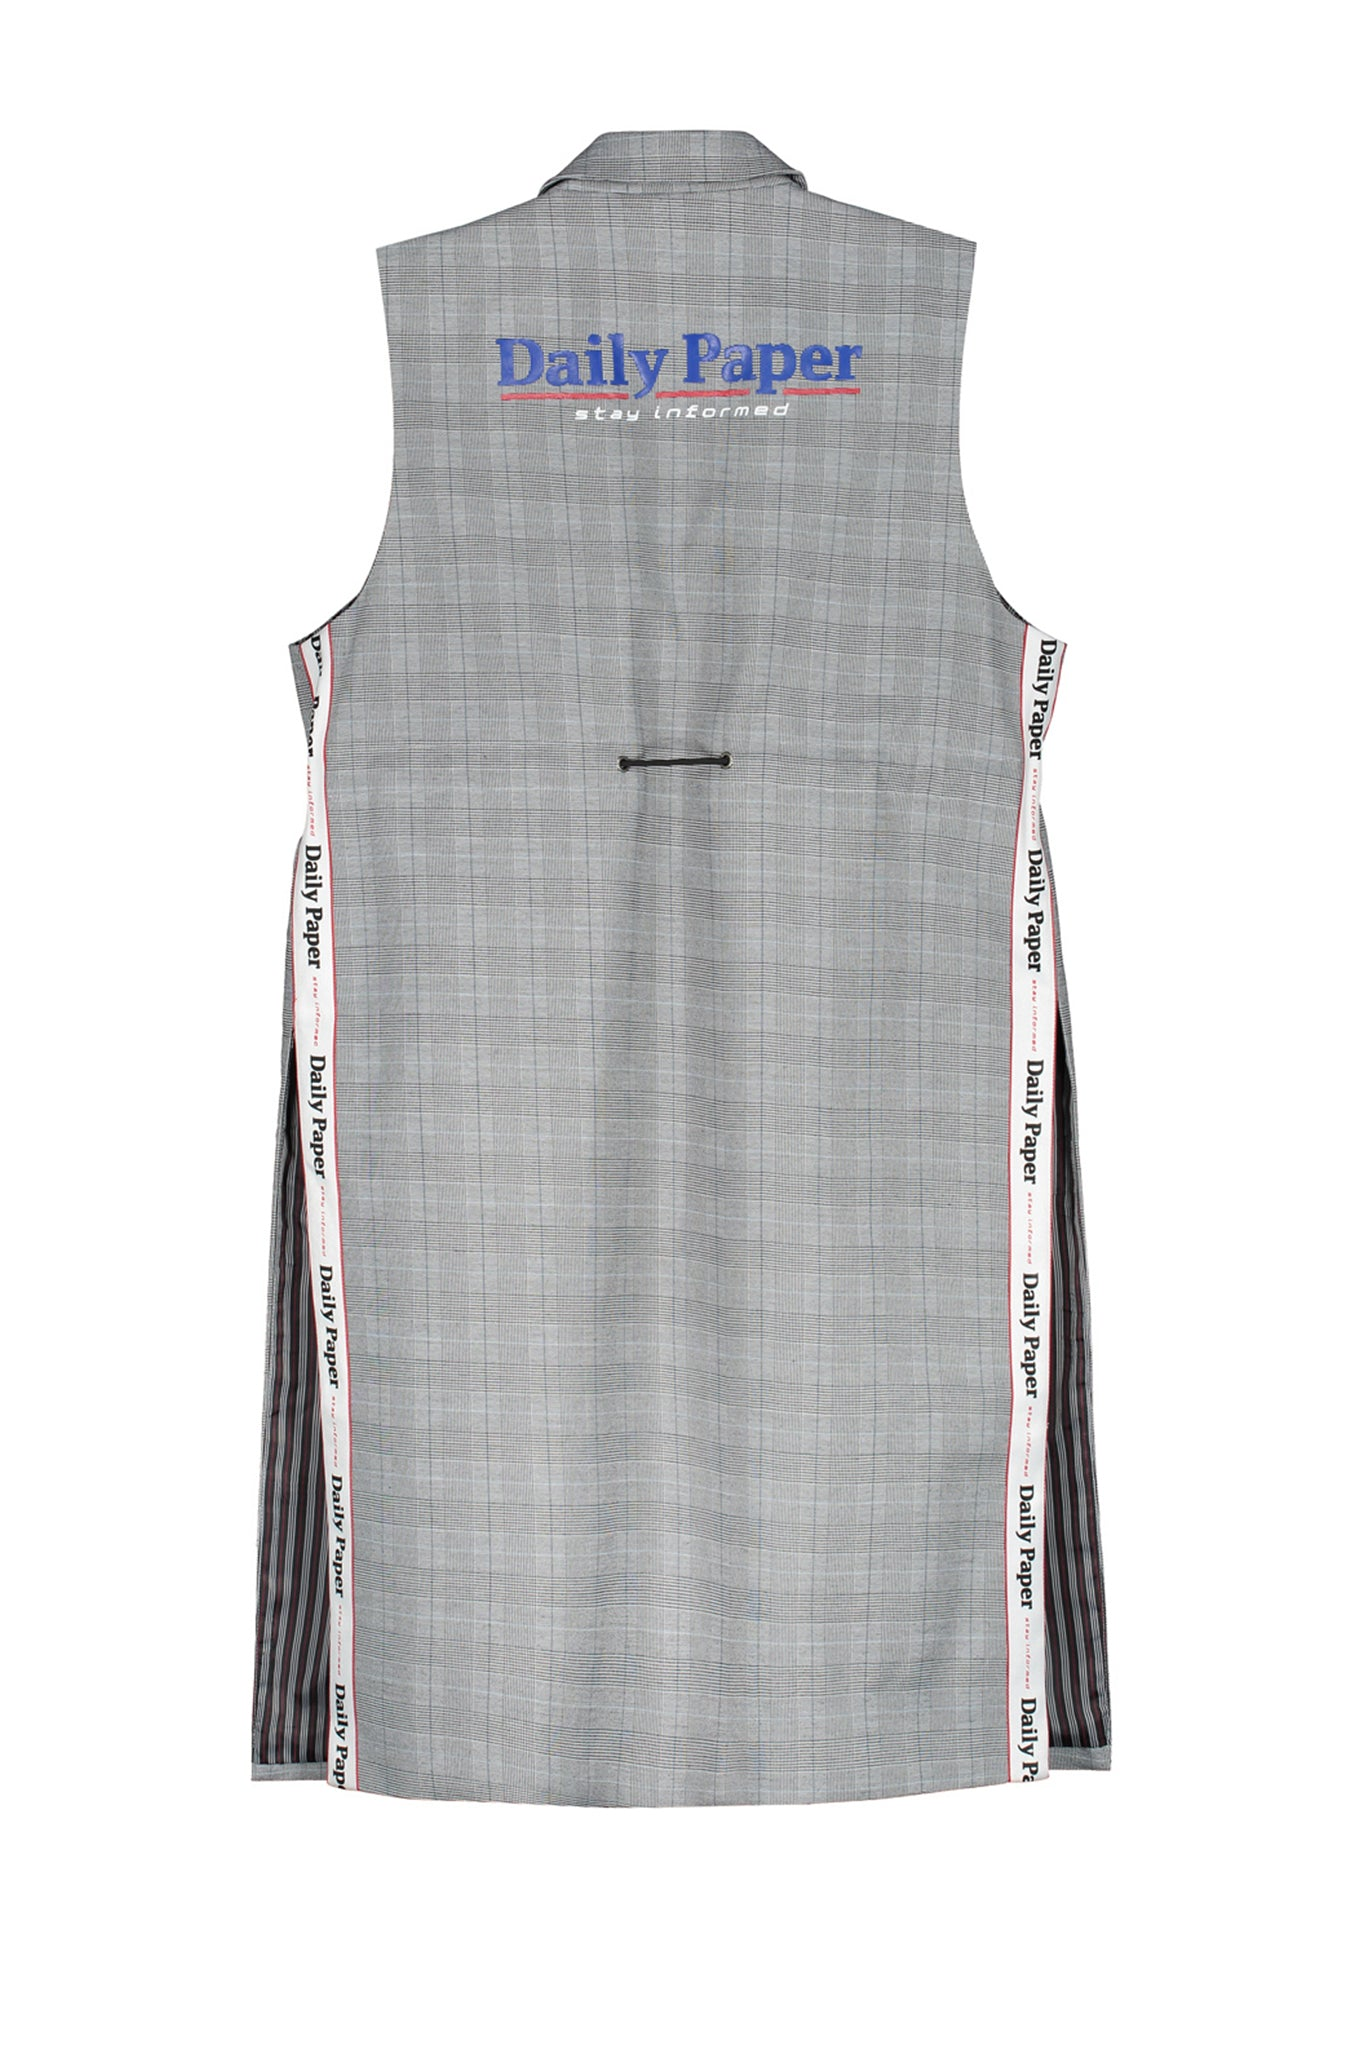 womens grey vest blazer by Daily Paper back view by Daily Paper